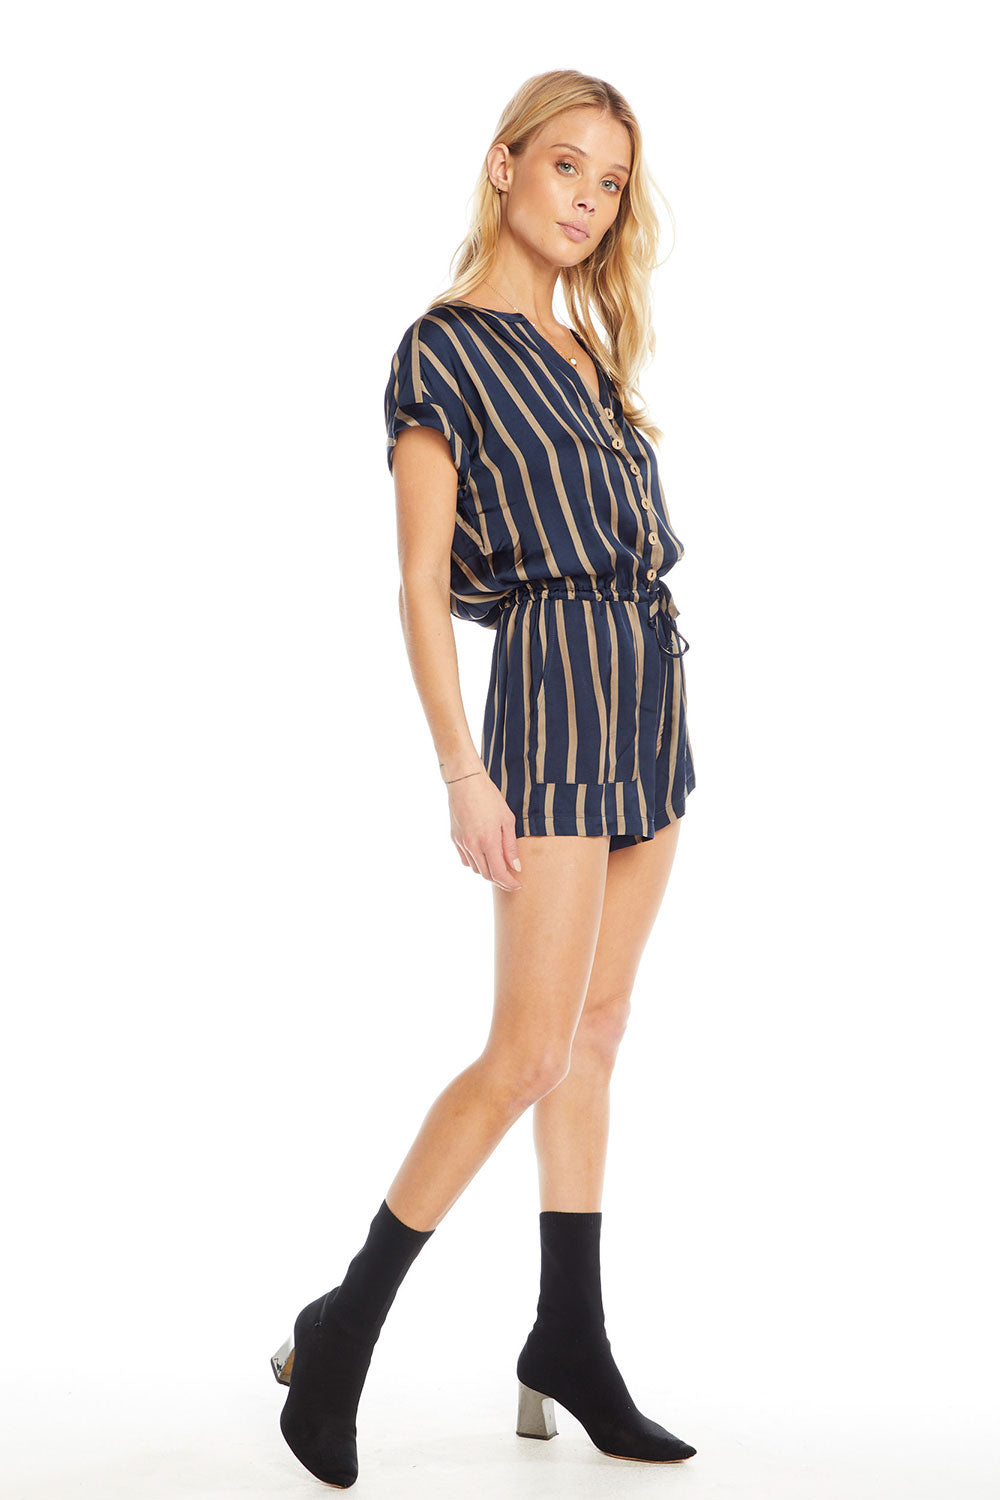 Silky Basics Short Sleeve Drop Shoulder Drawstring Waist Button Down Romper, WOMENS, chaserbrand.com,chaser clothing,chaser apparel,chaser los angeles